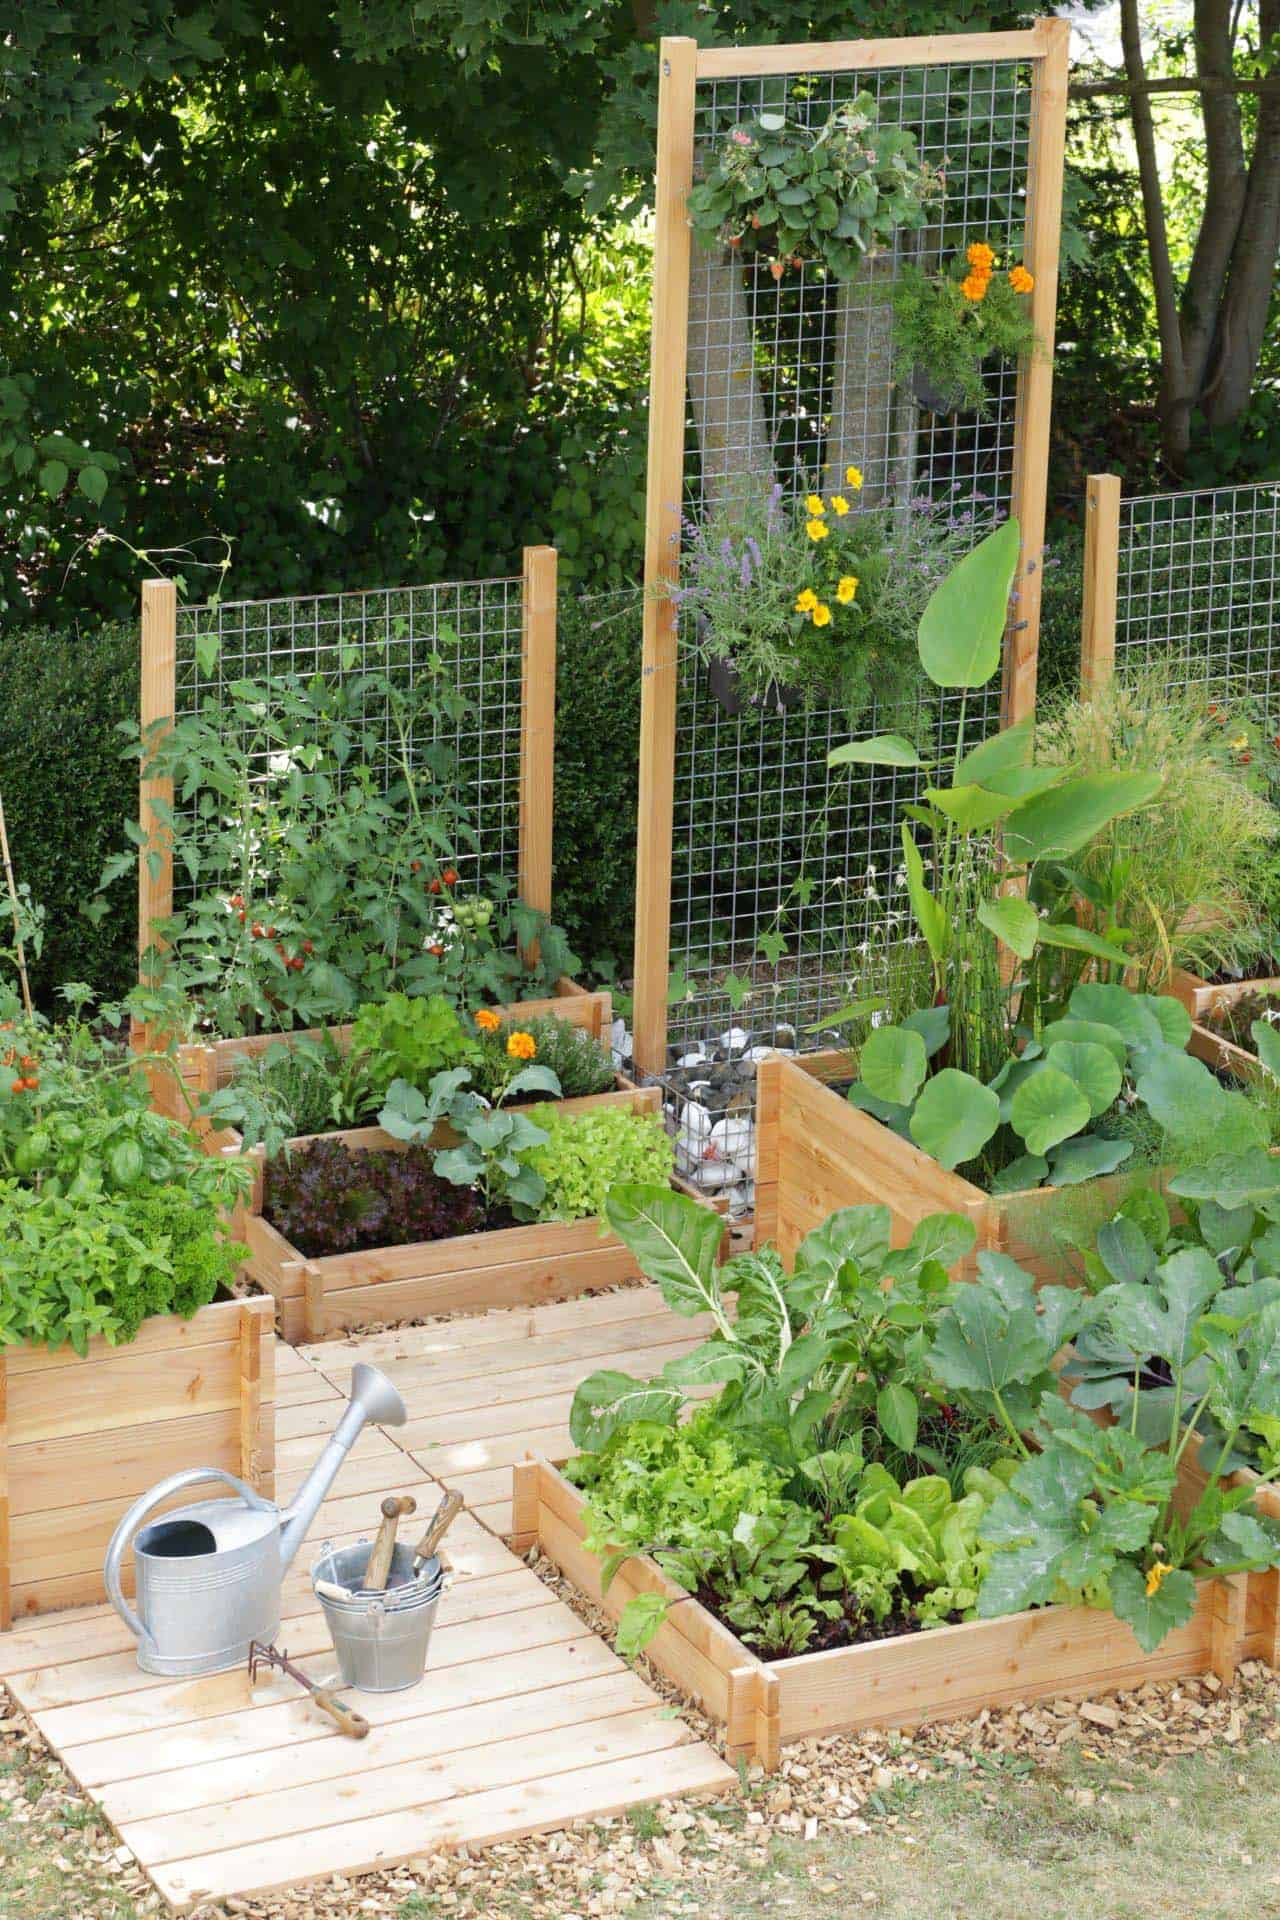 30 Amazing Ideas For Growing A Vegetable Garden In Your ... on Outdoor Vegetable Garden Ideas id=83459